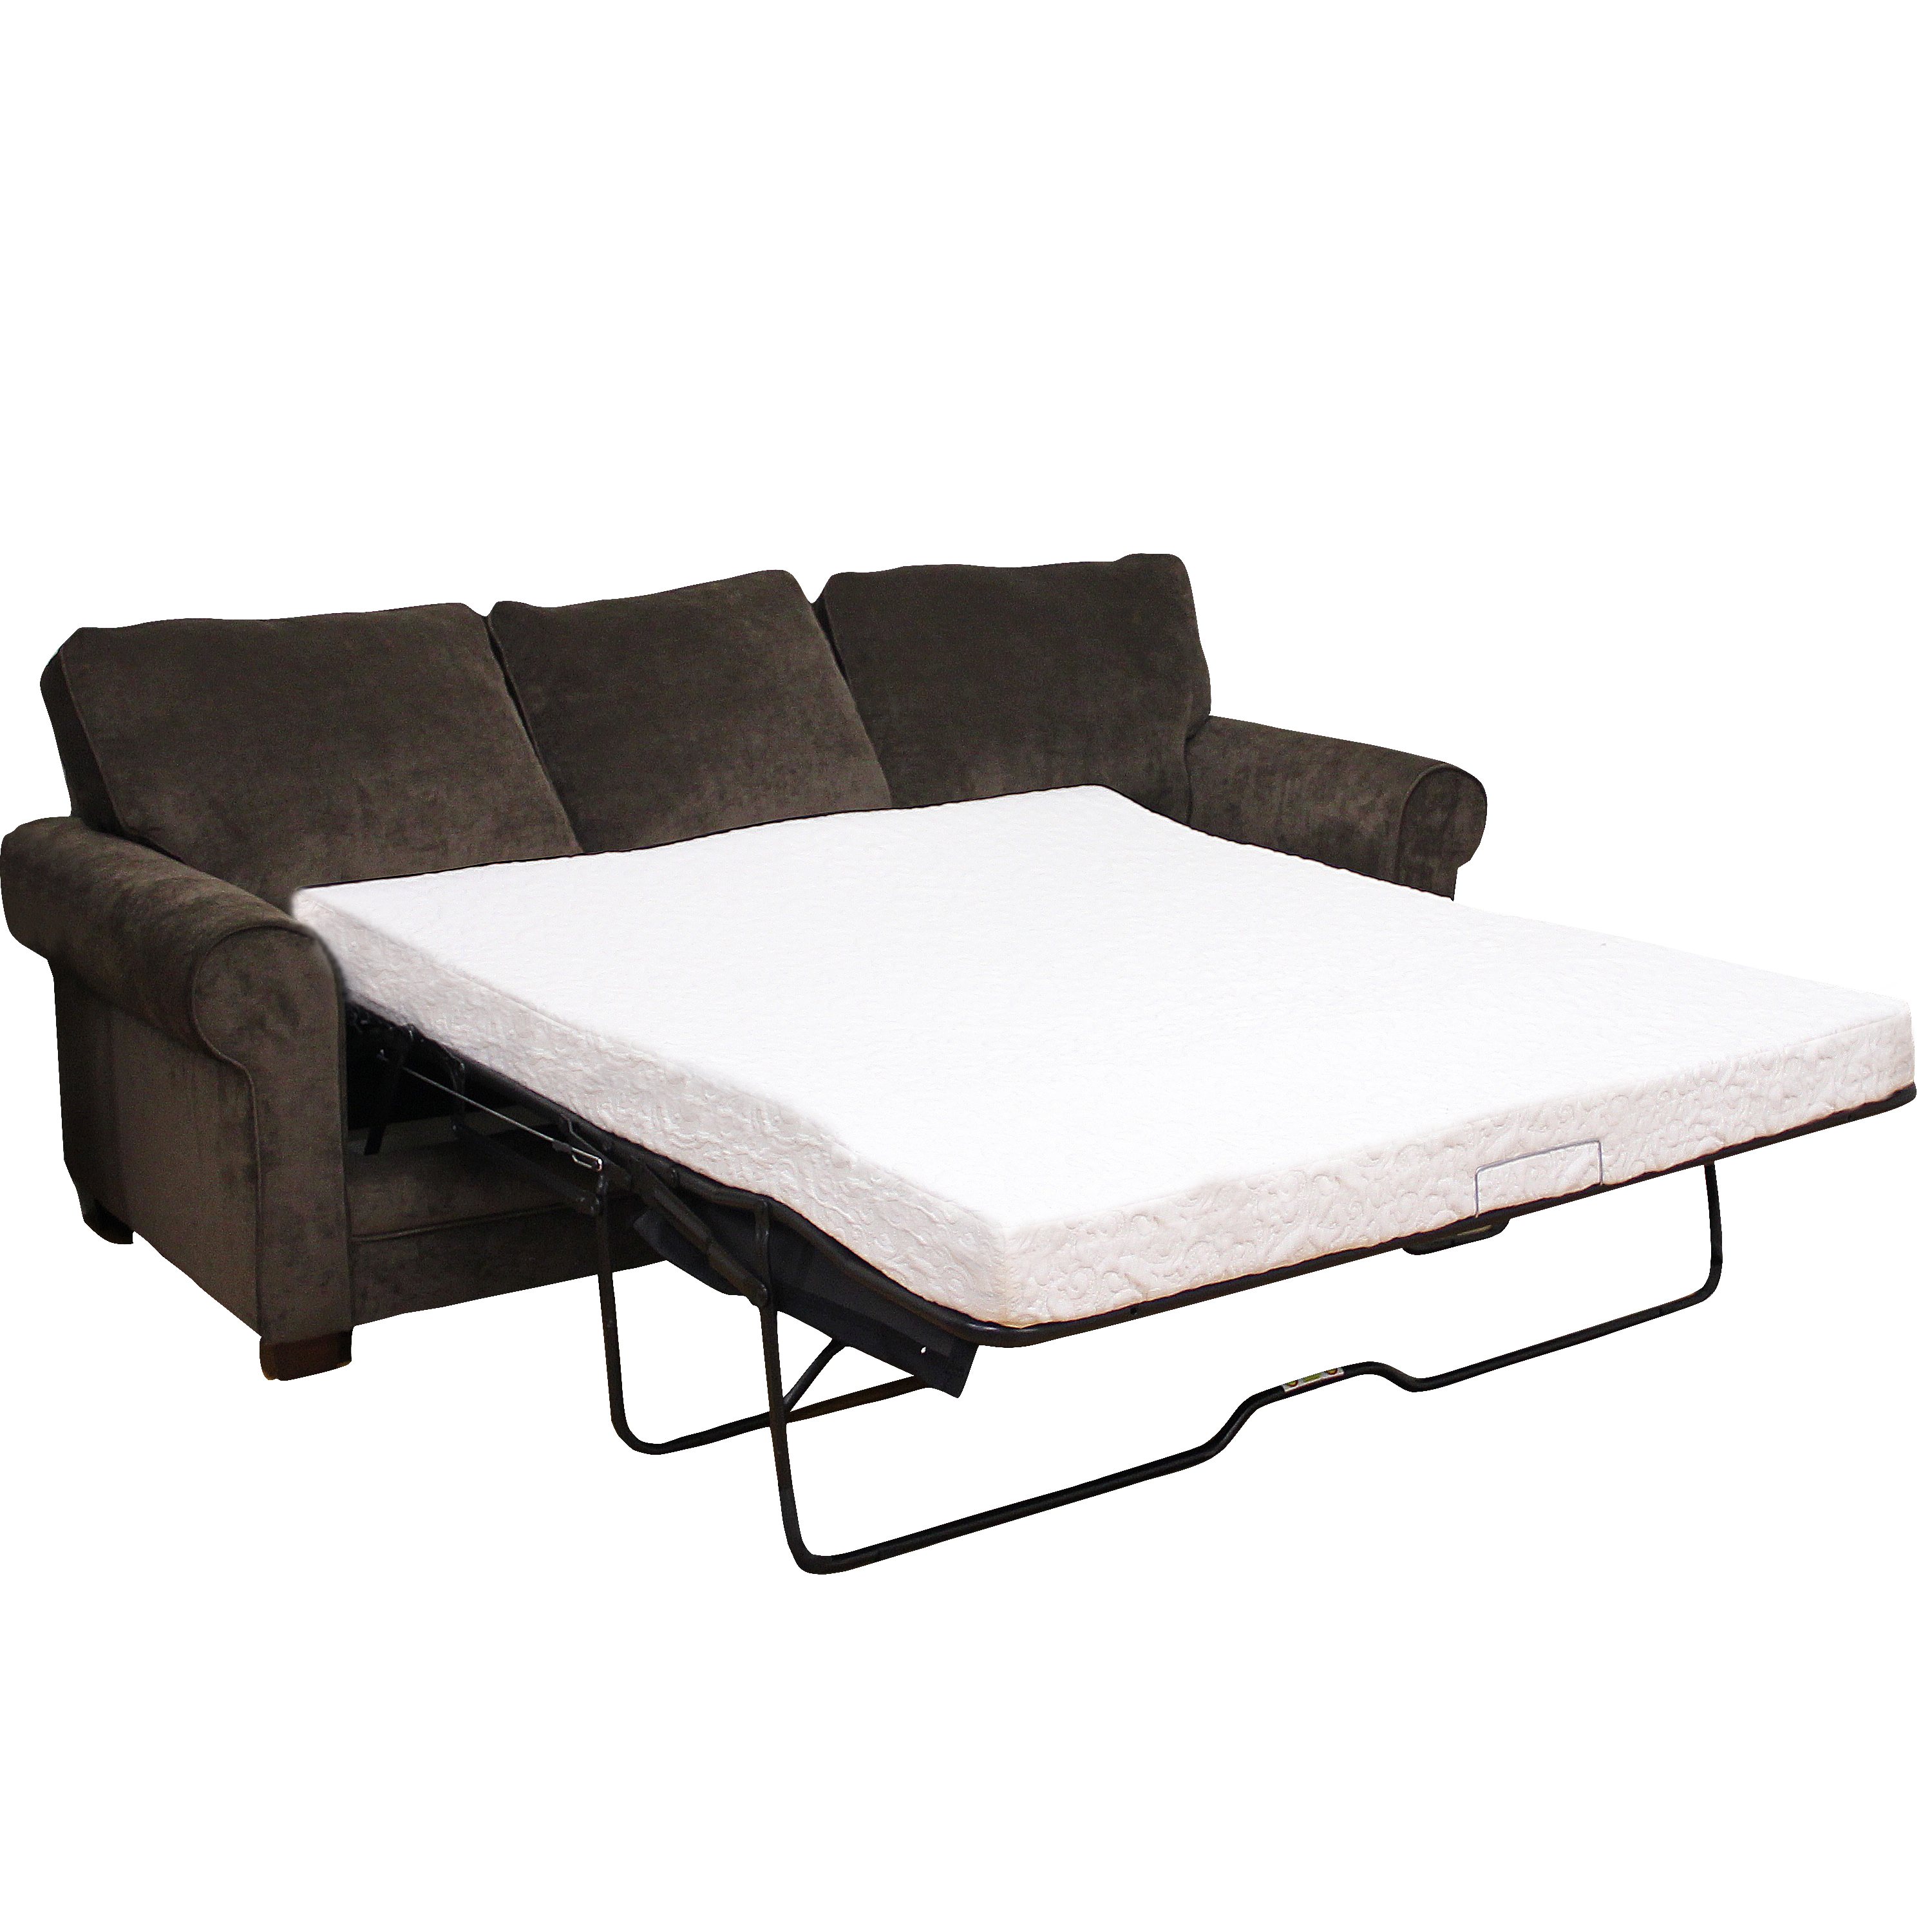 with longfabu walmartcom out mattress black photos walmart frame pictures roll metal com twin trundle bed